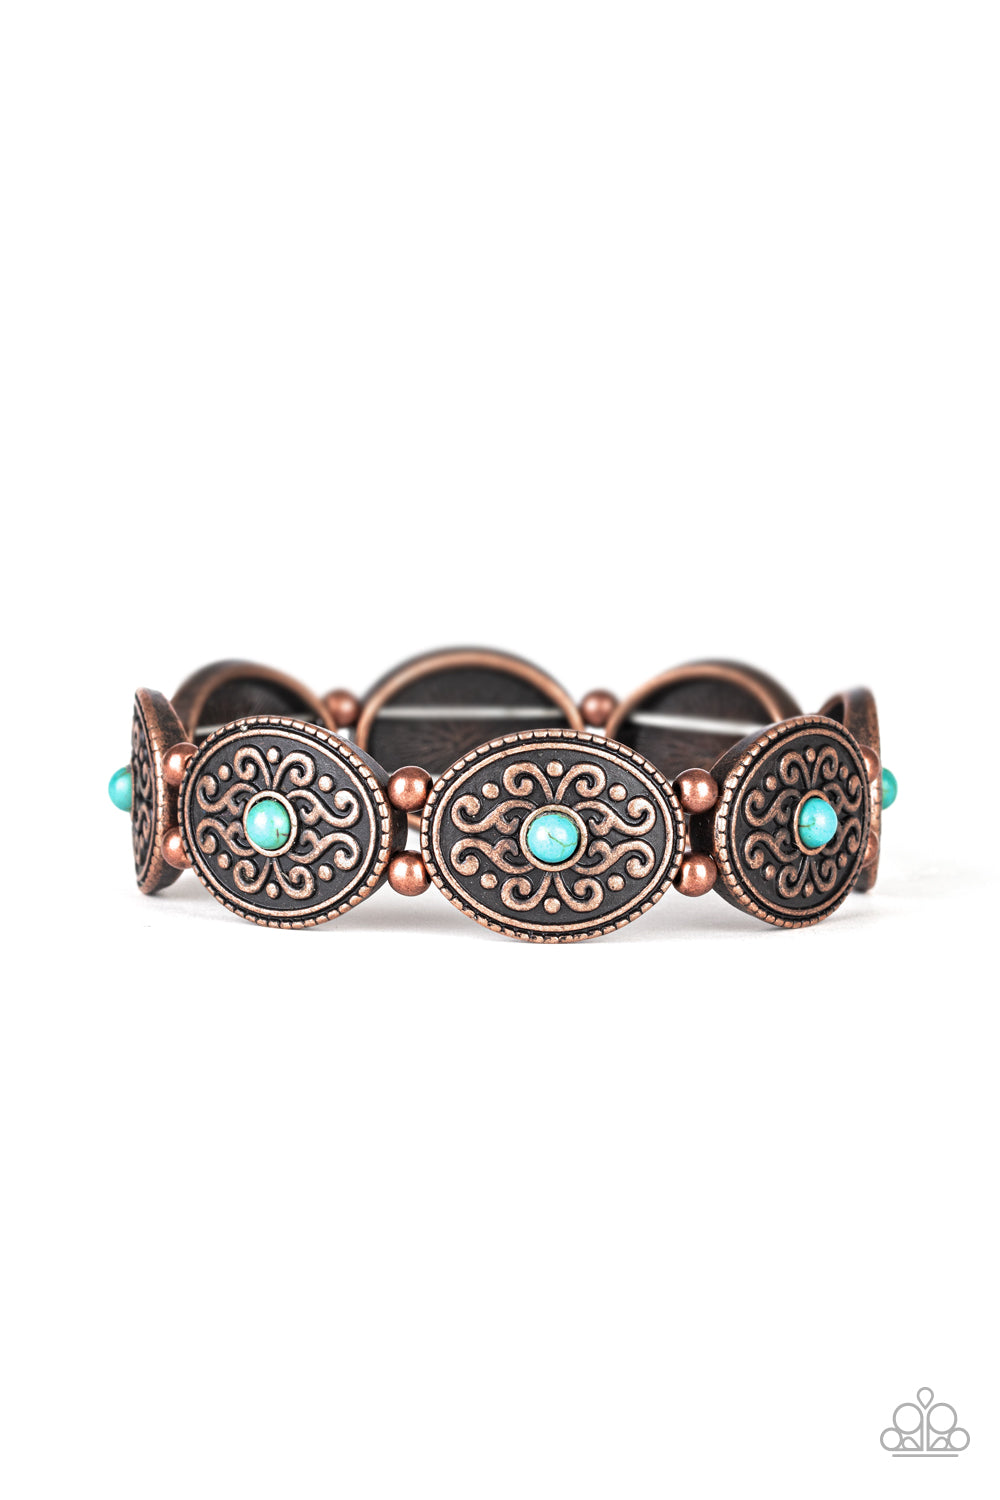 West Wishes - Copper Bracelet